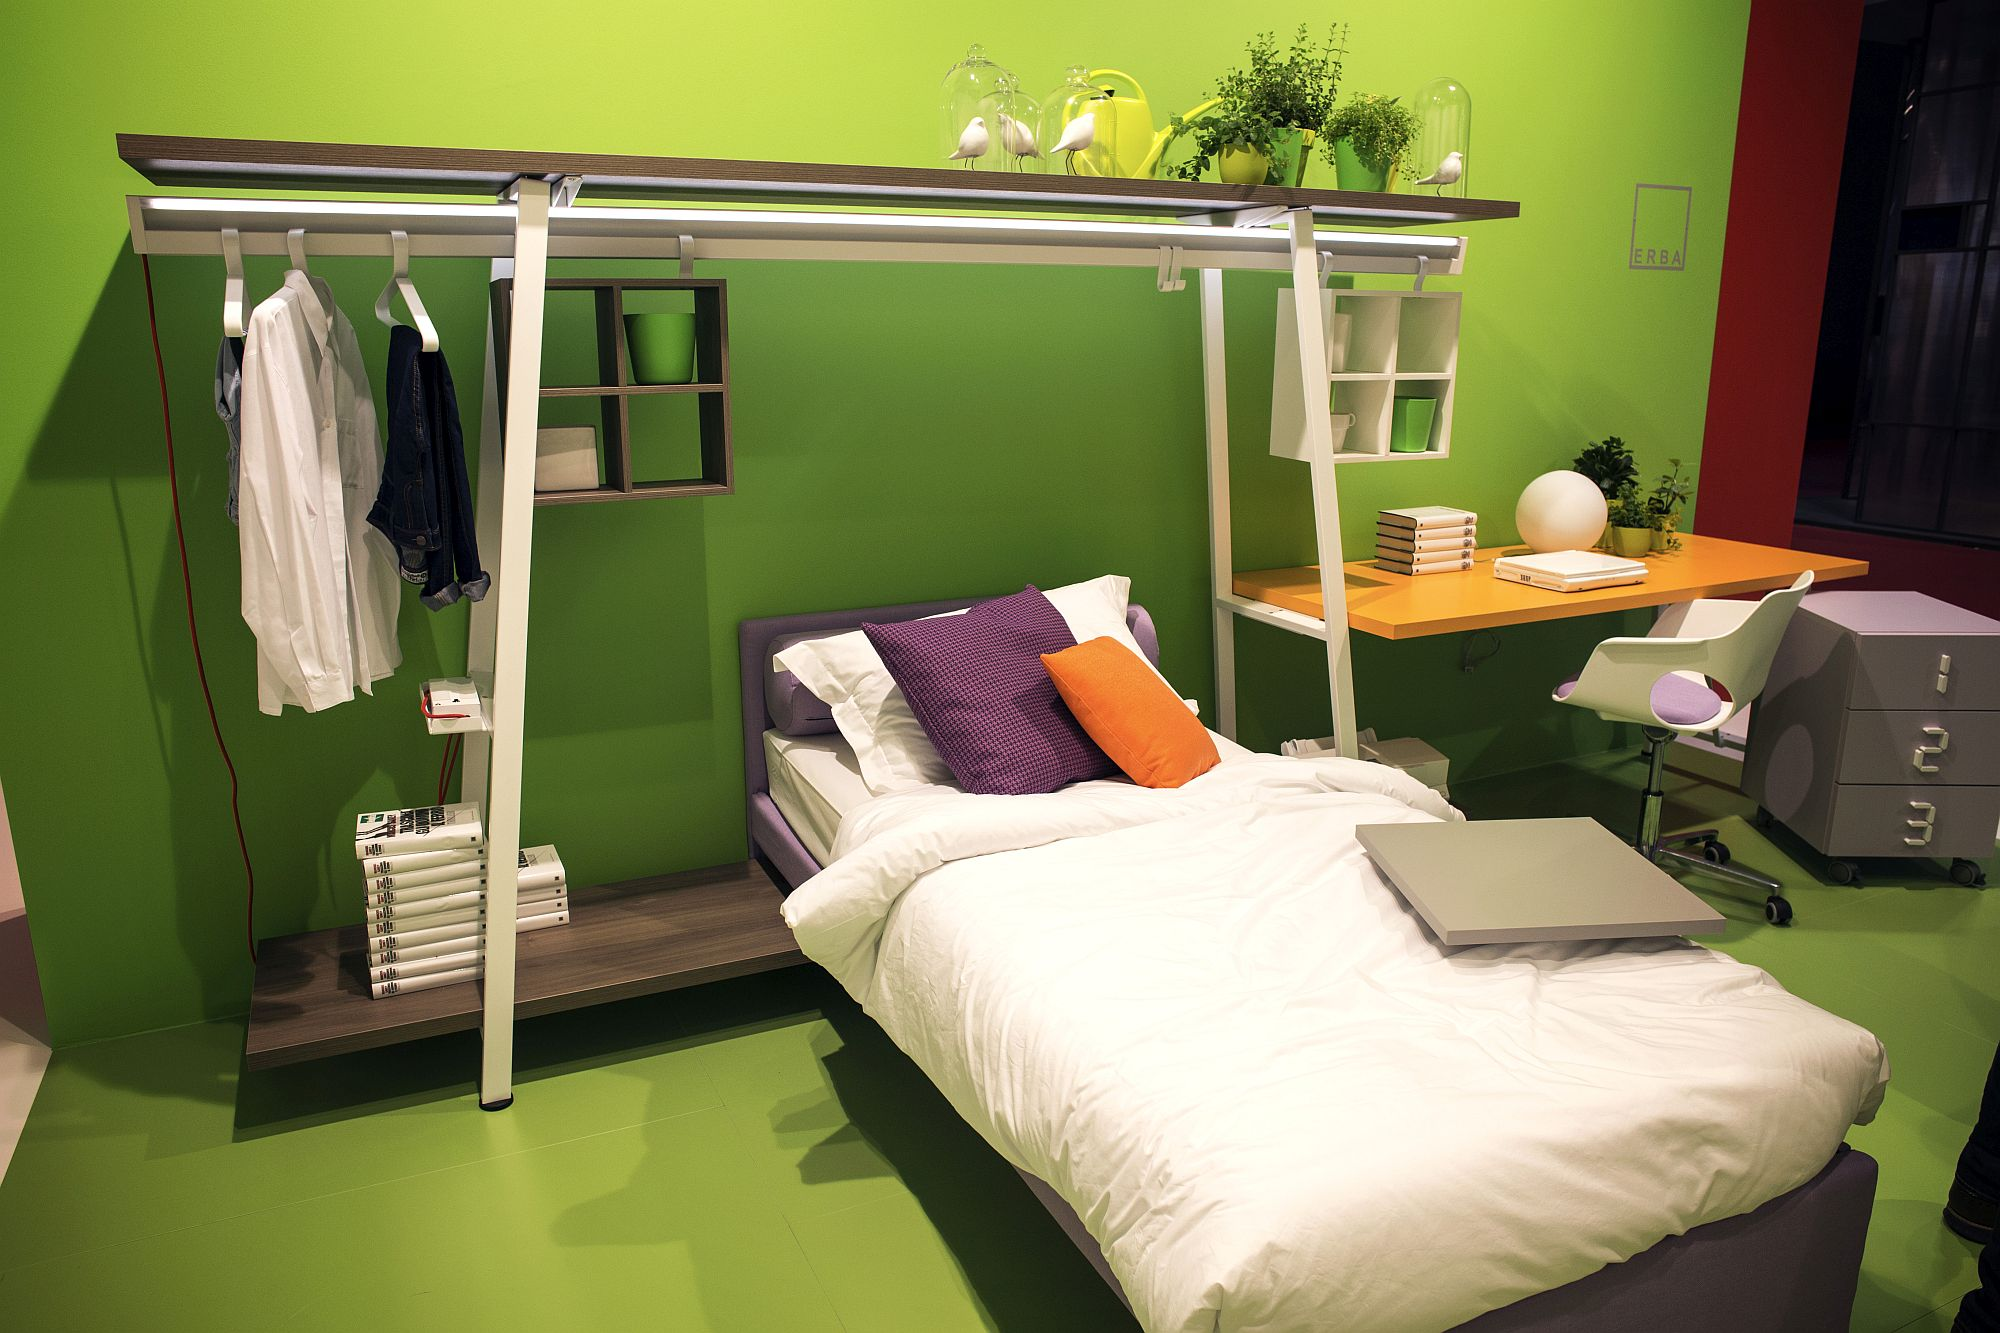 Open hanger system above the bed is a smart space-saver for the small bedroom